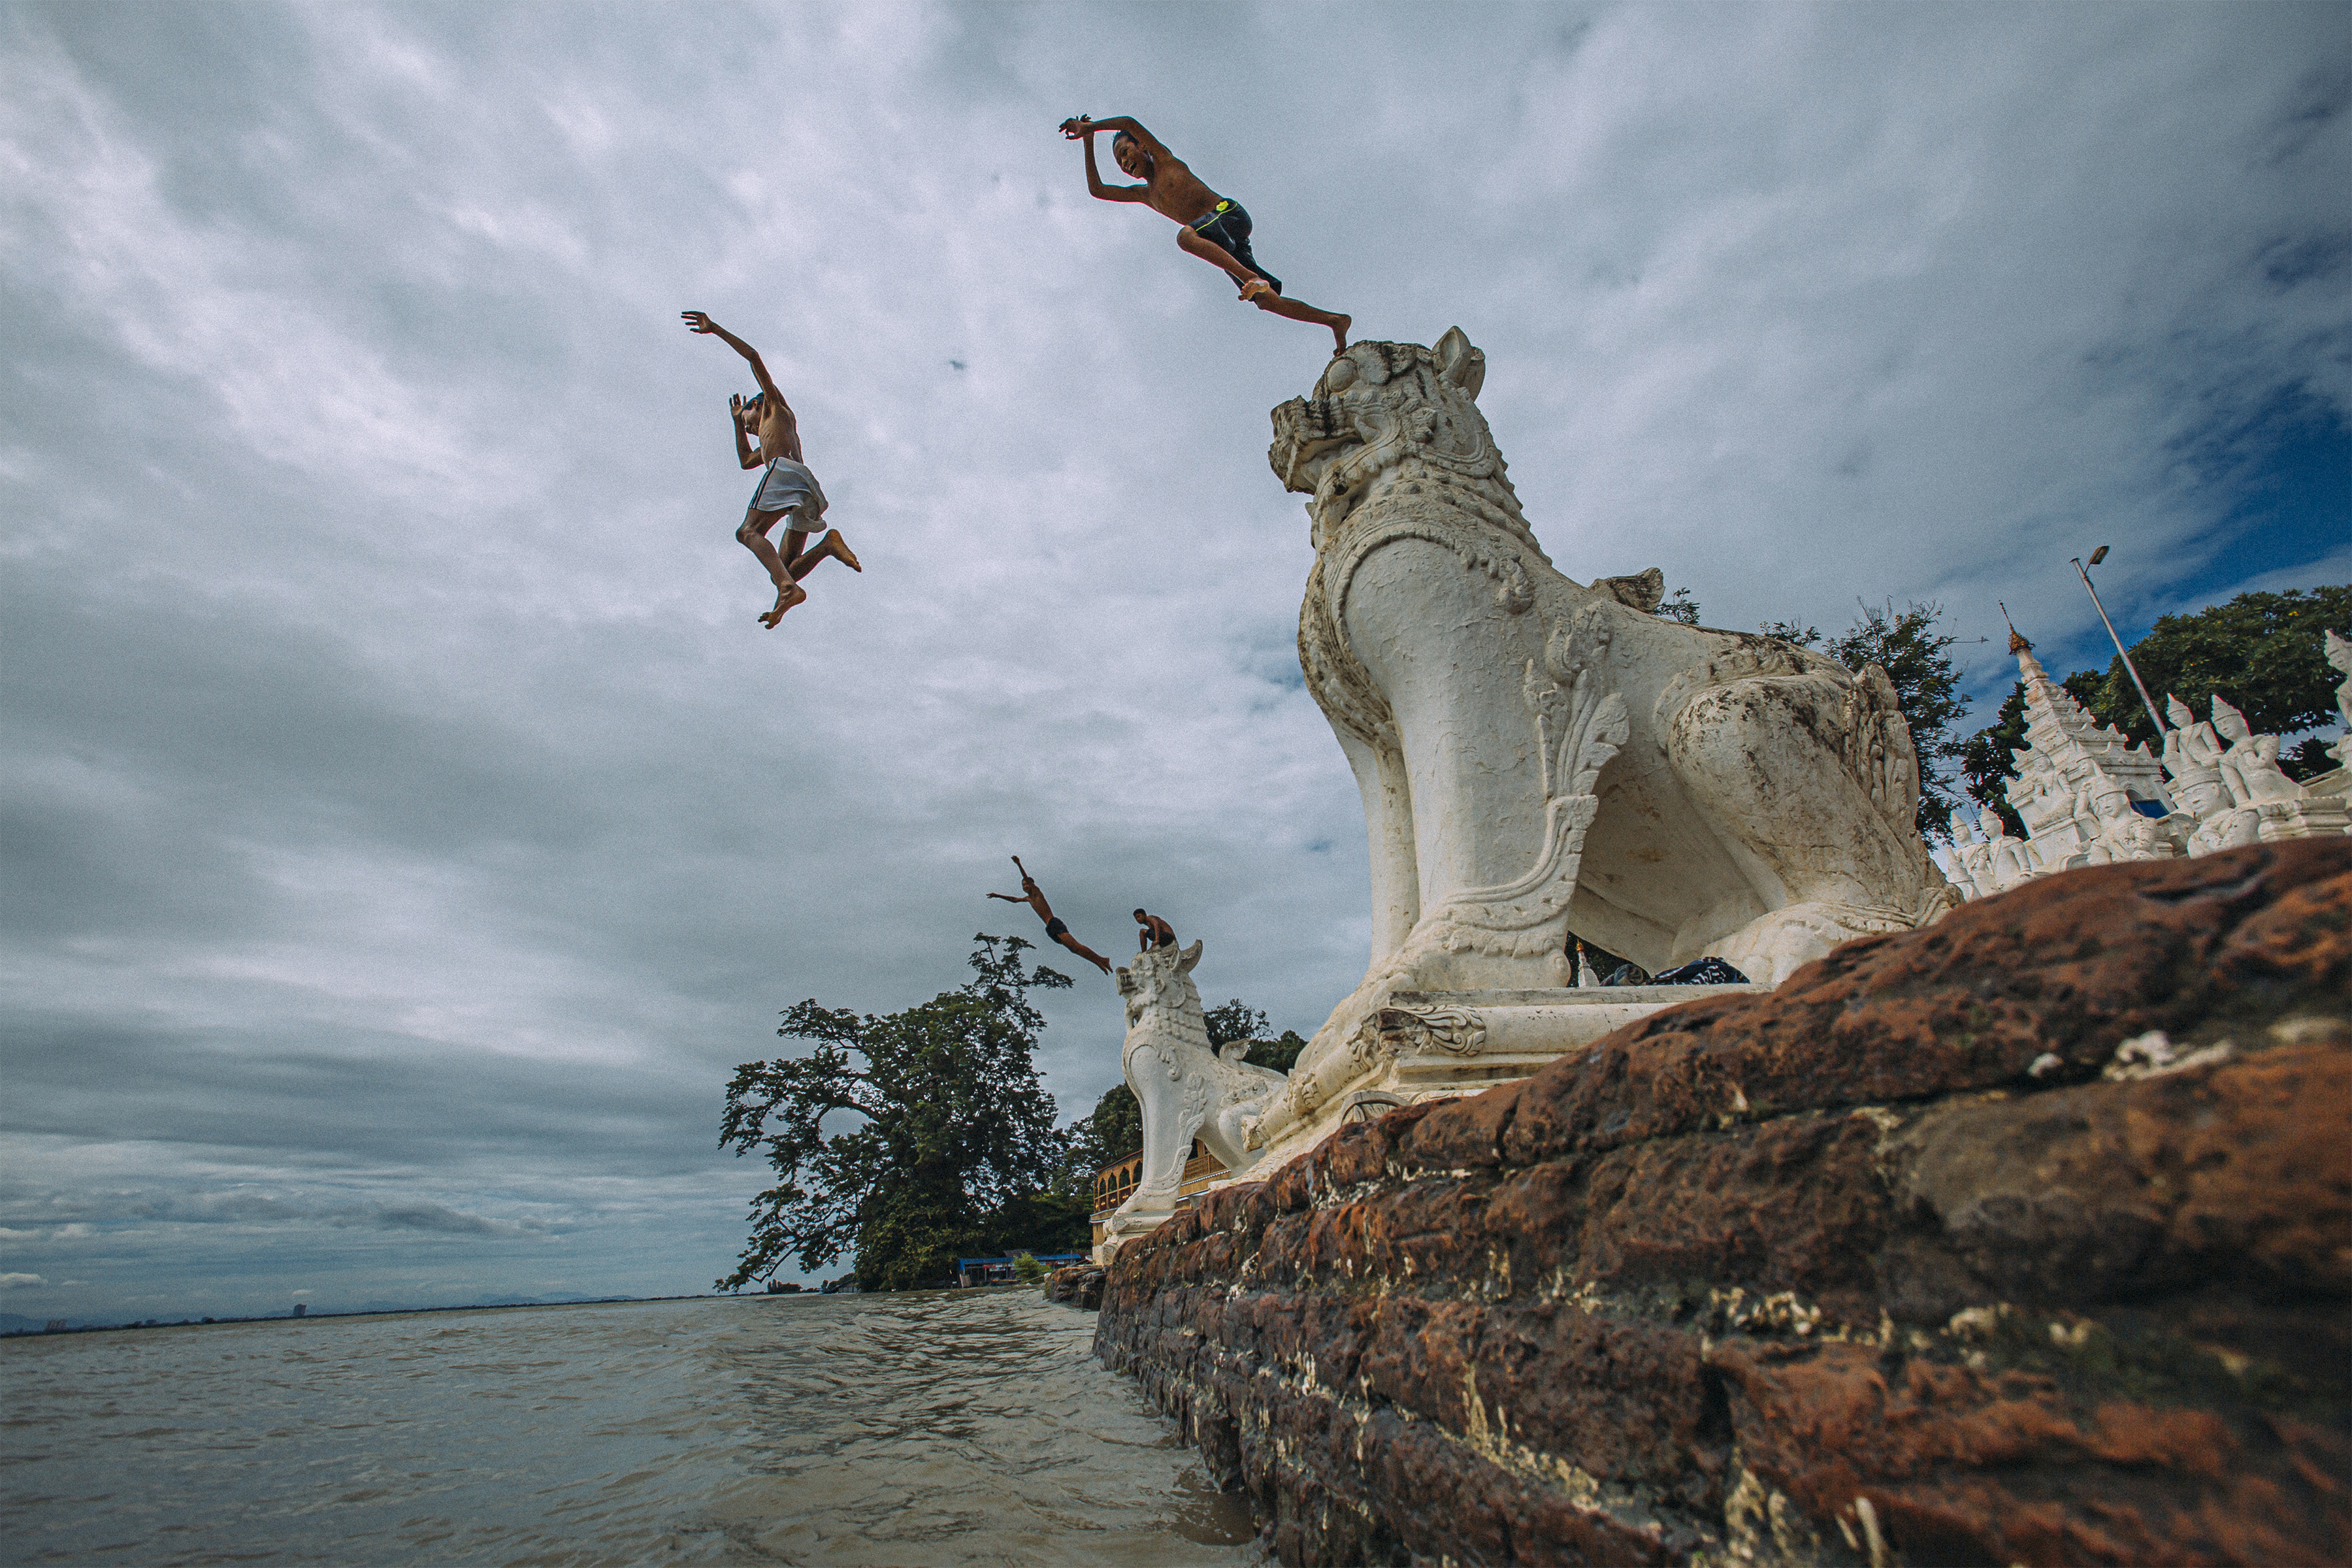 © Zwe Nyi Htet, Myanmar, entry, Open competition, Motion, 2021 Sony World Photography Awards